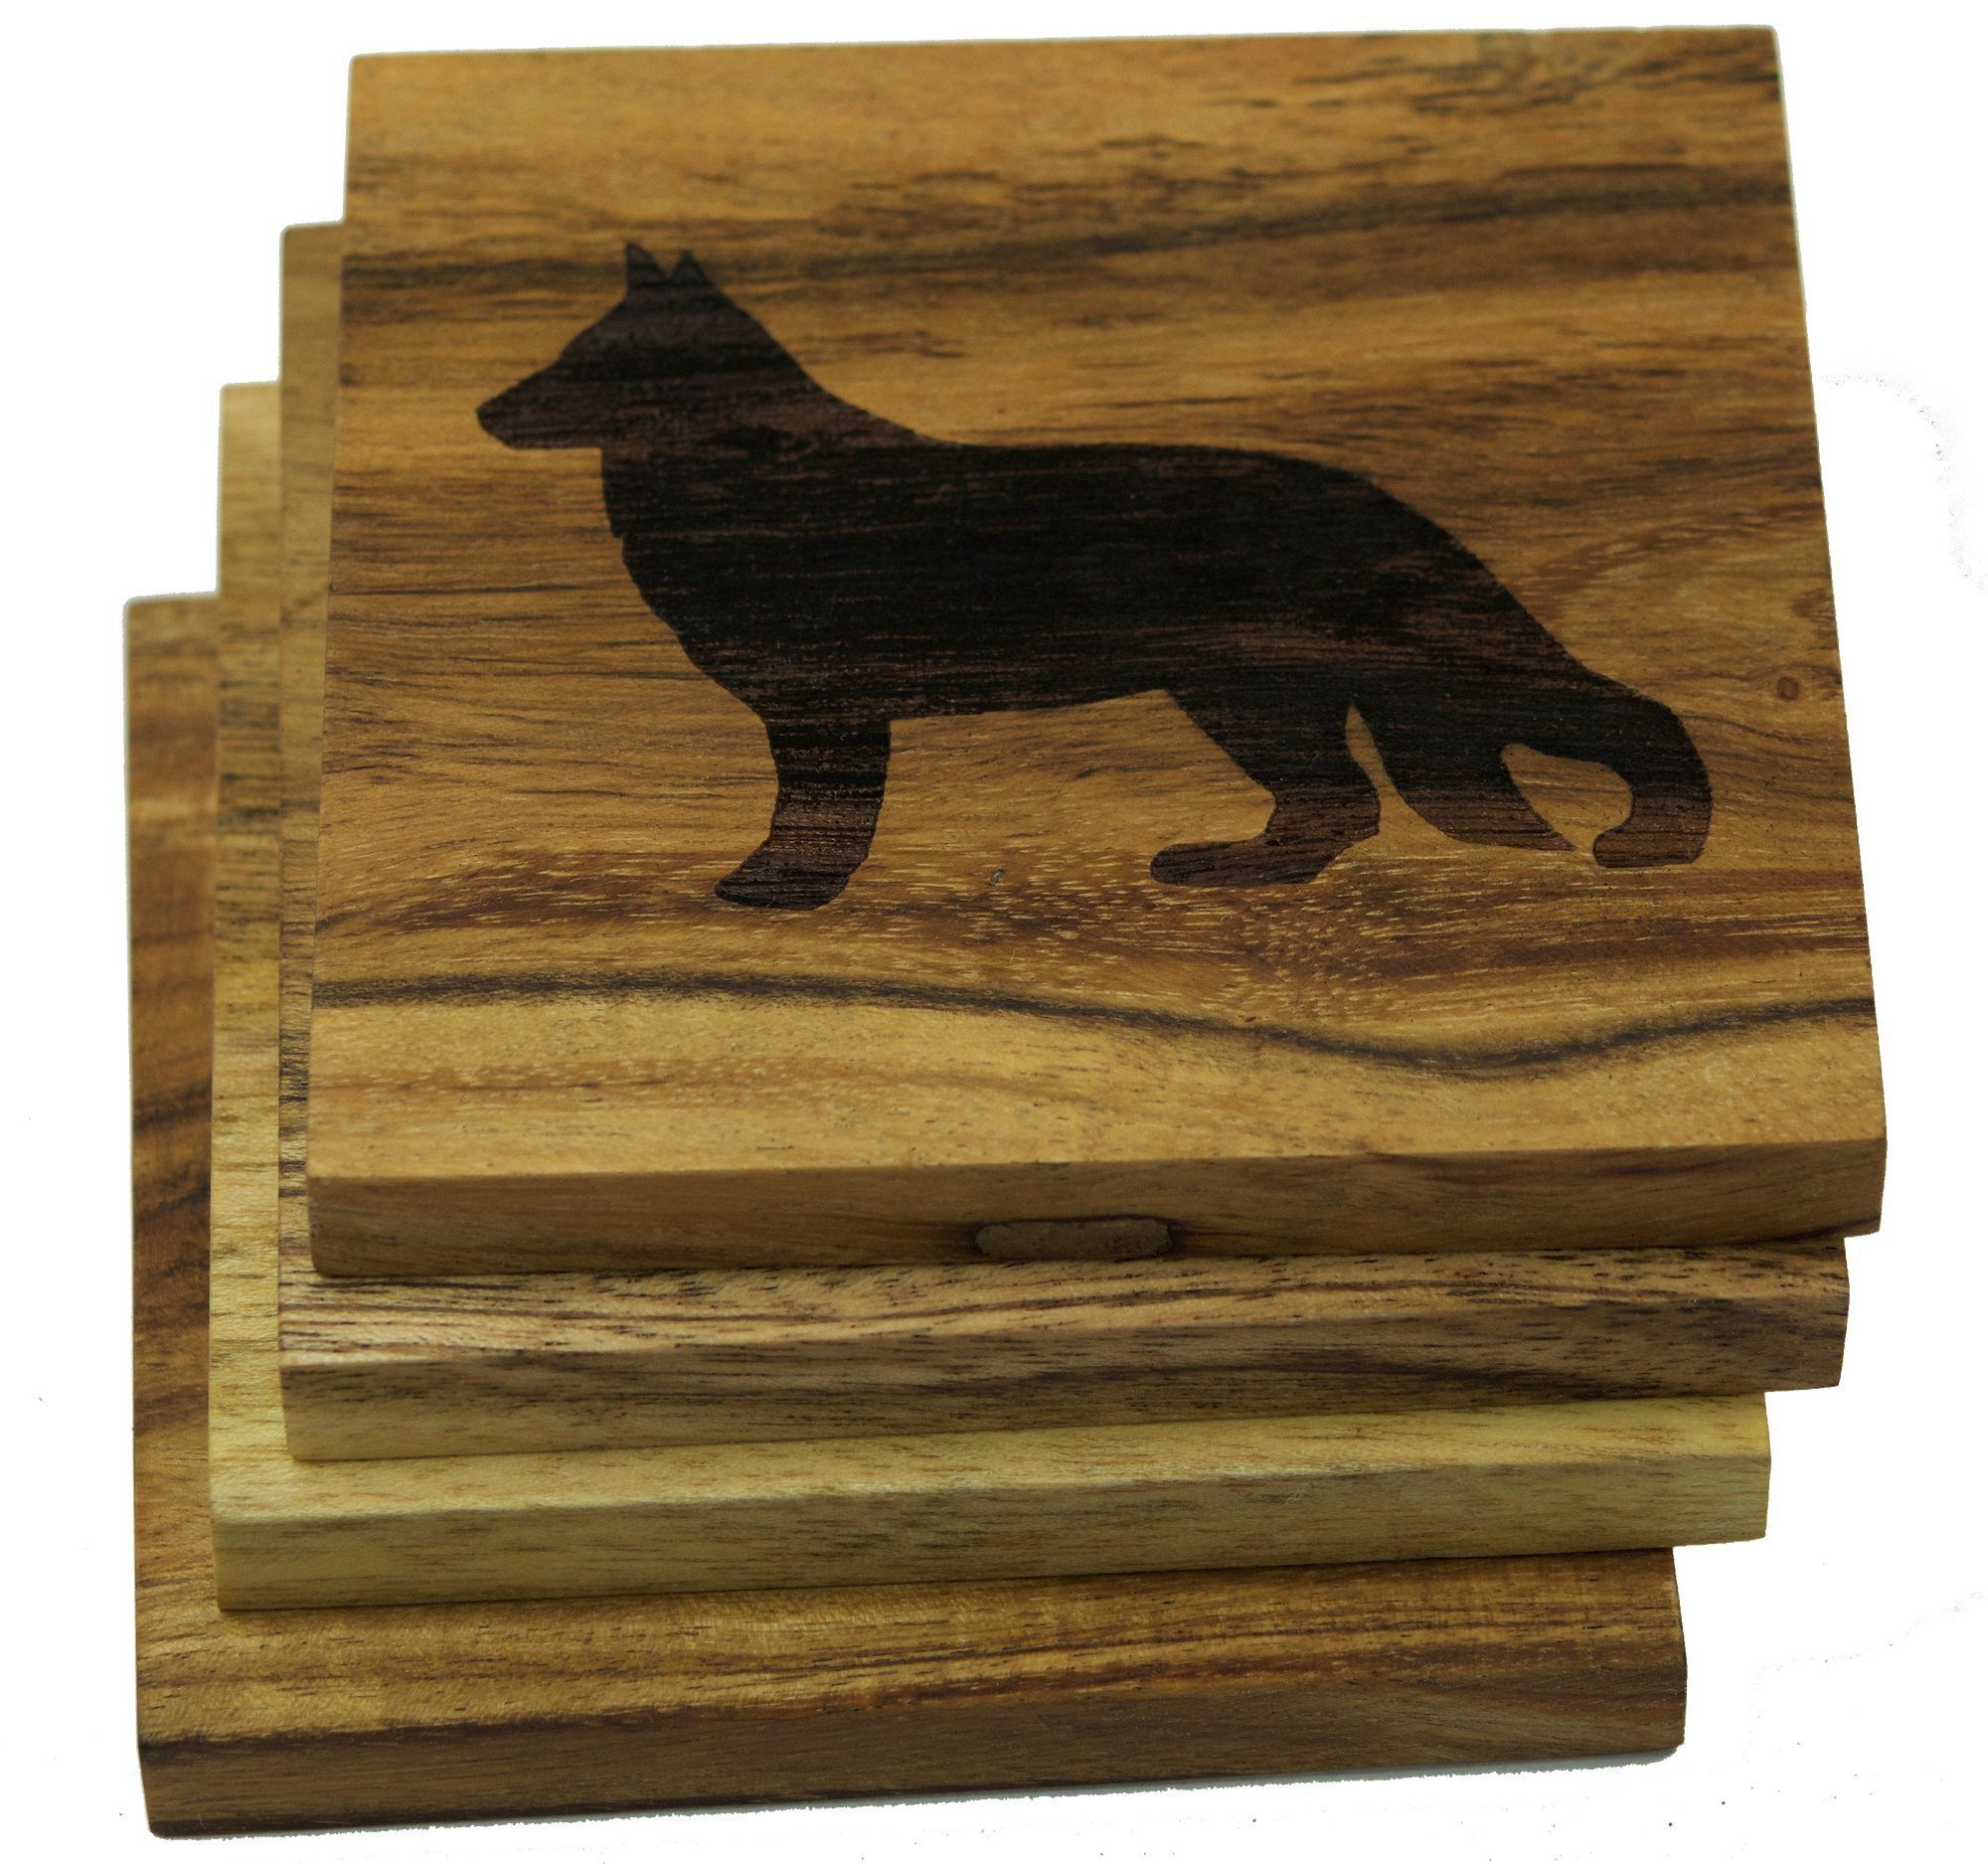 German Shepherd (10+ Dog Breeds Available to Choose From) Drink Coasters Engraved Acacia Wood Design - Set of Four